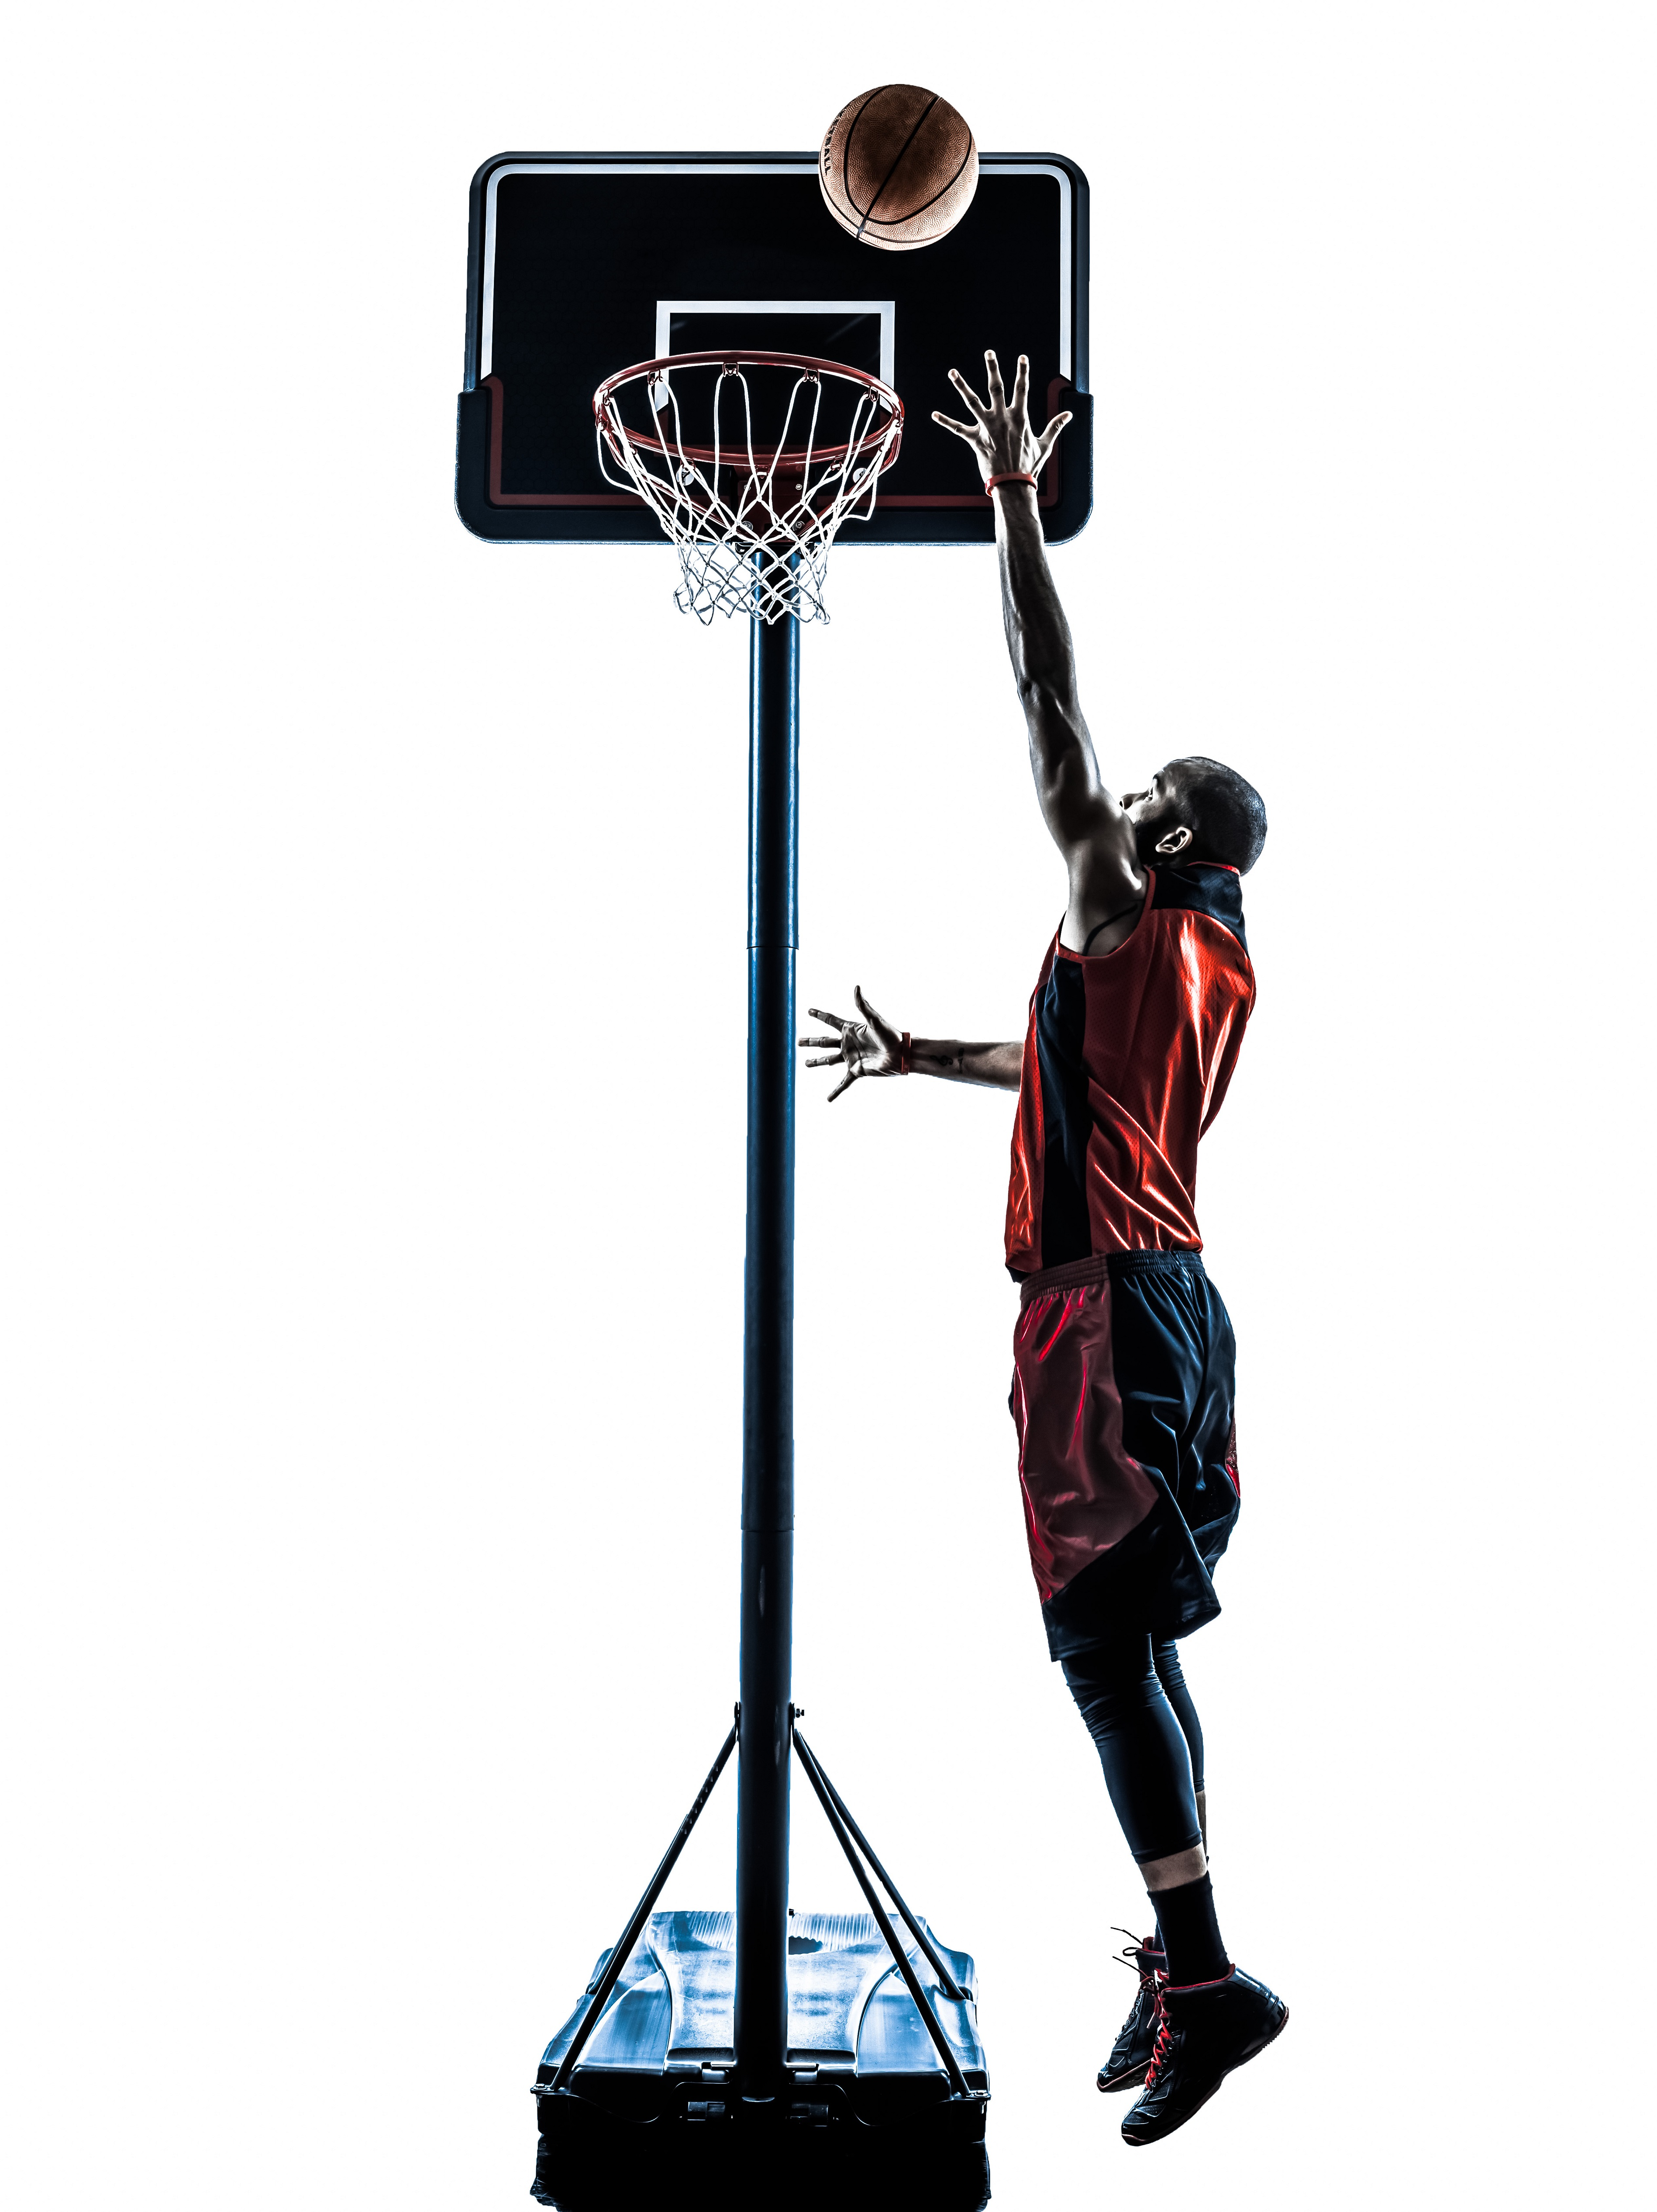 RhinoFit sets your business up for a layup